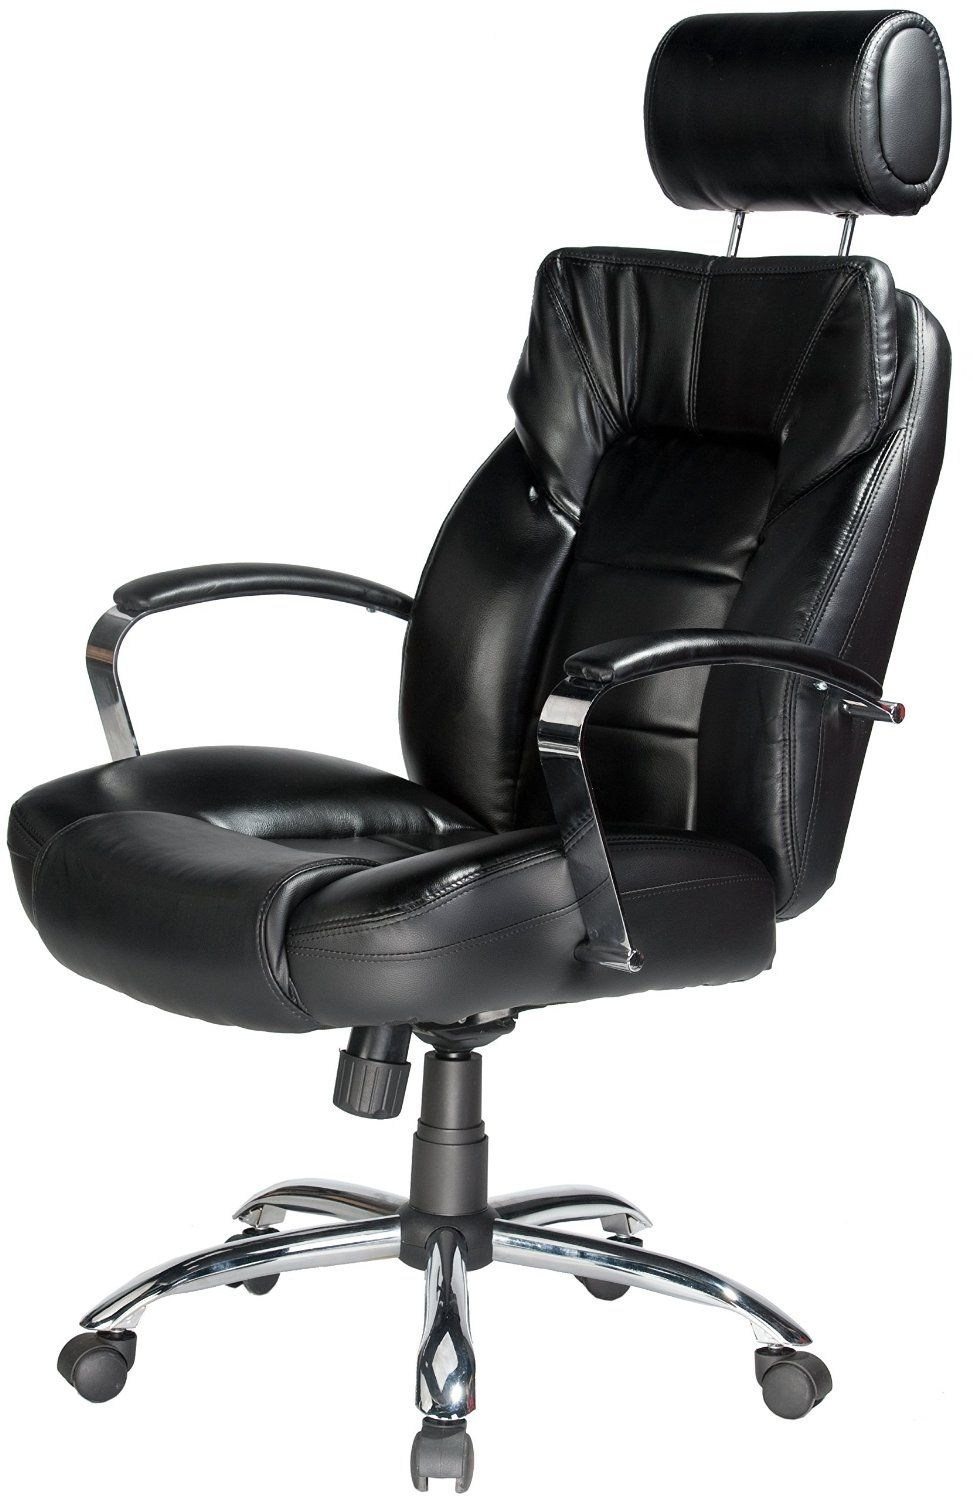 Oversized Leather Office Chairs